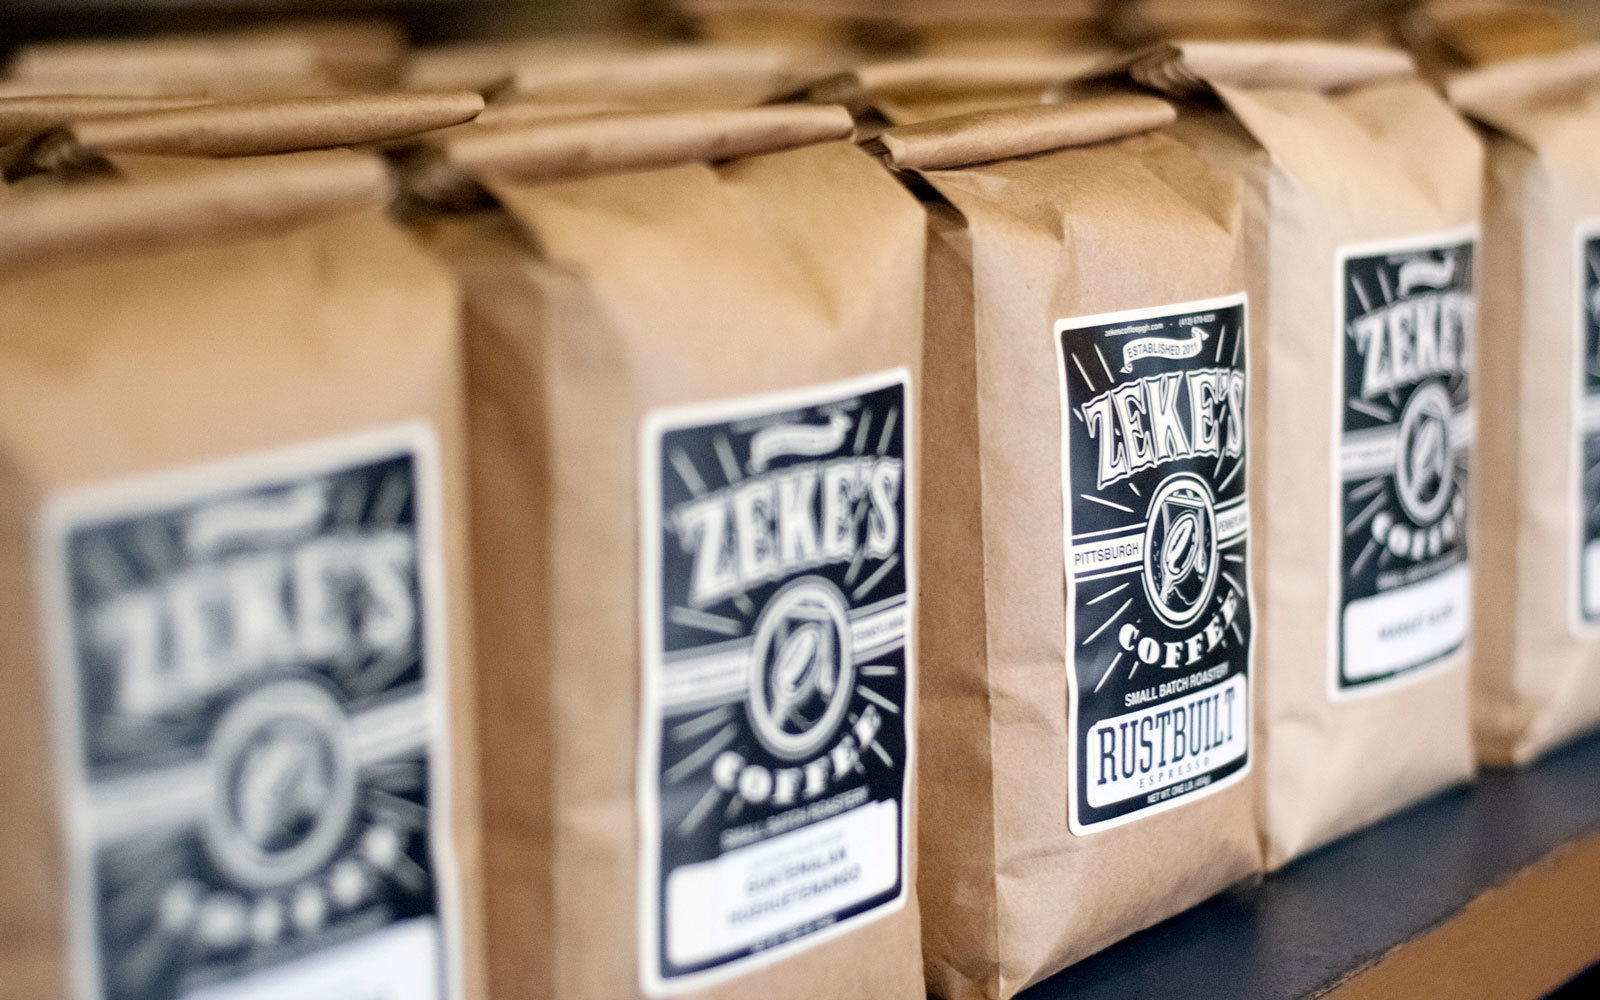 bags of Zeke's coffee